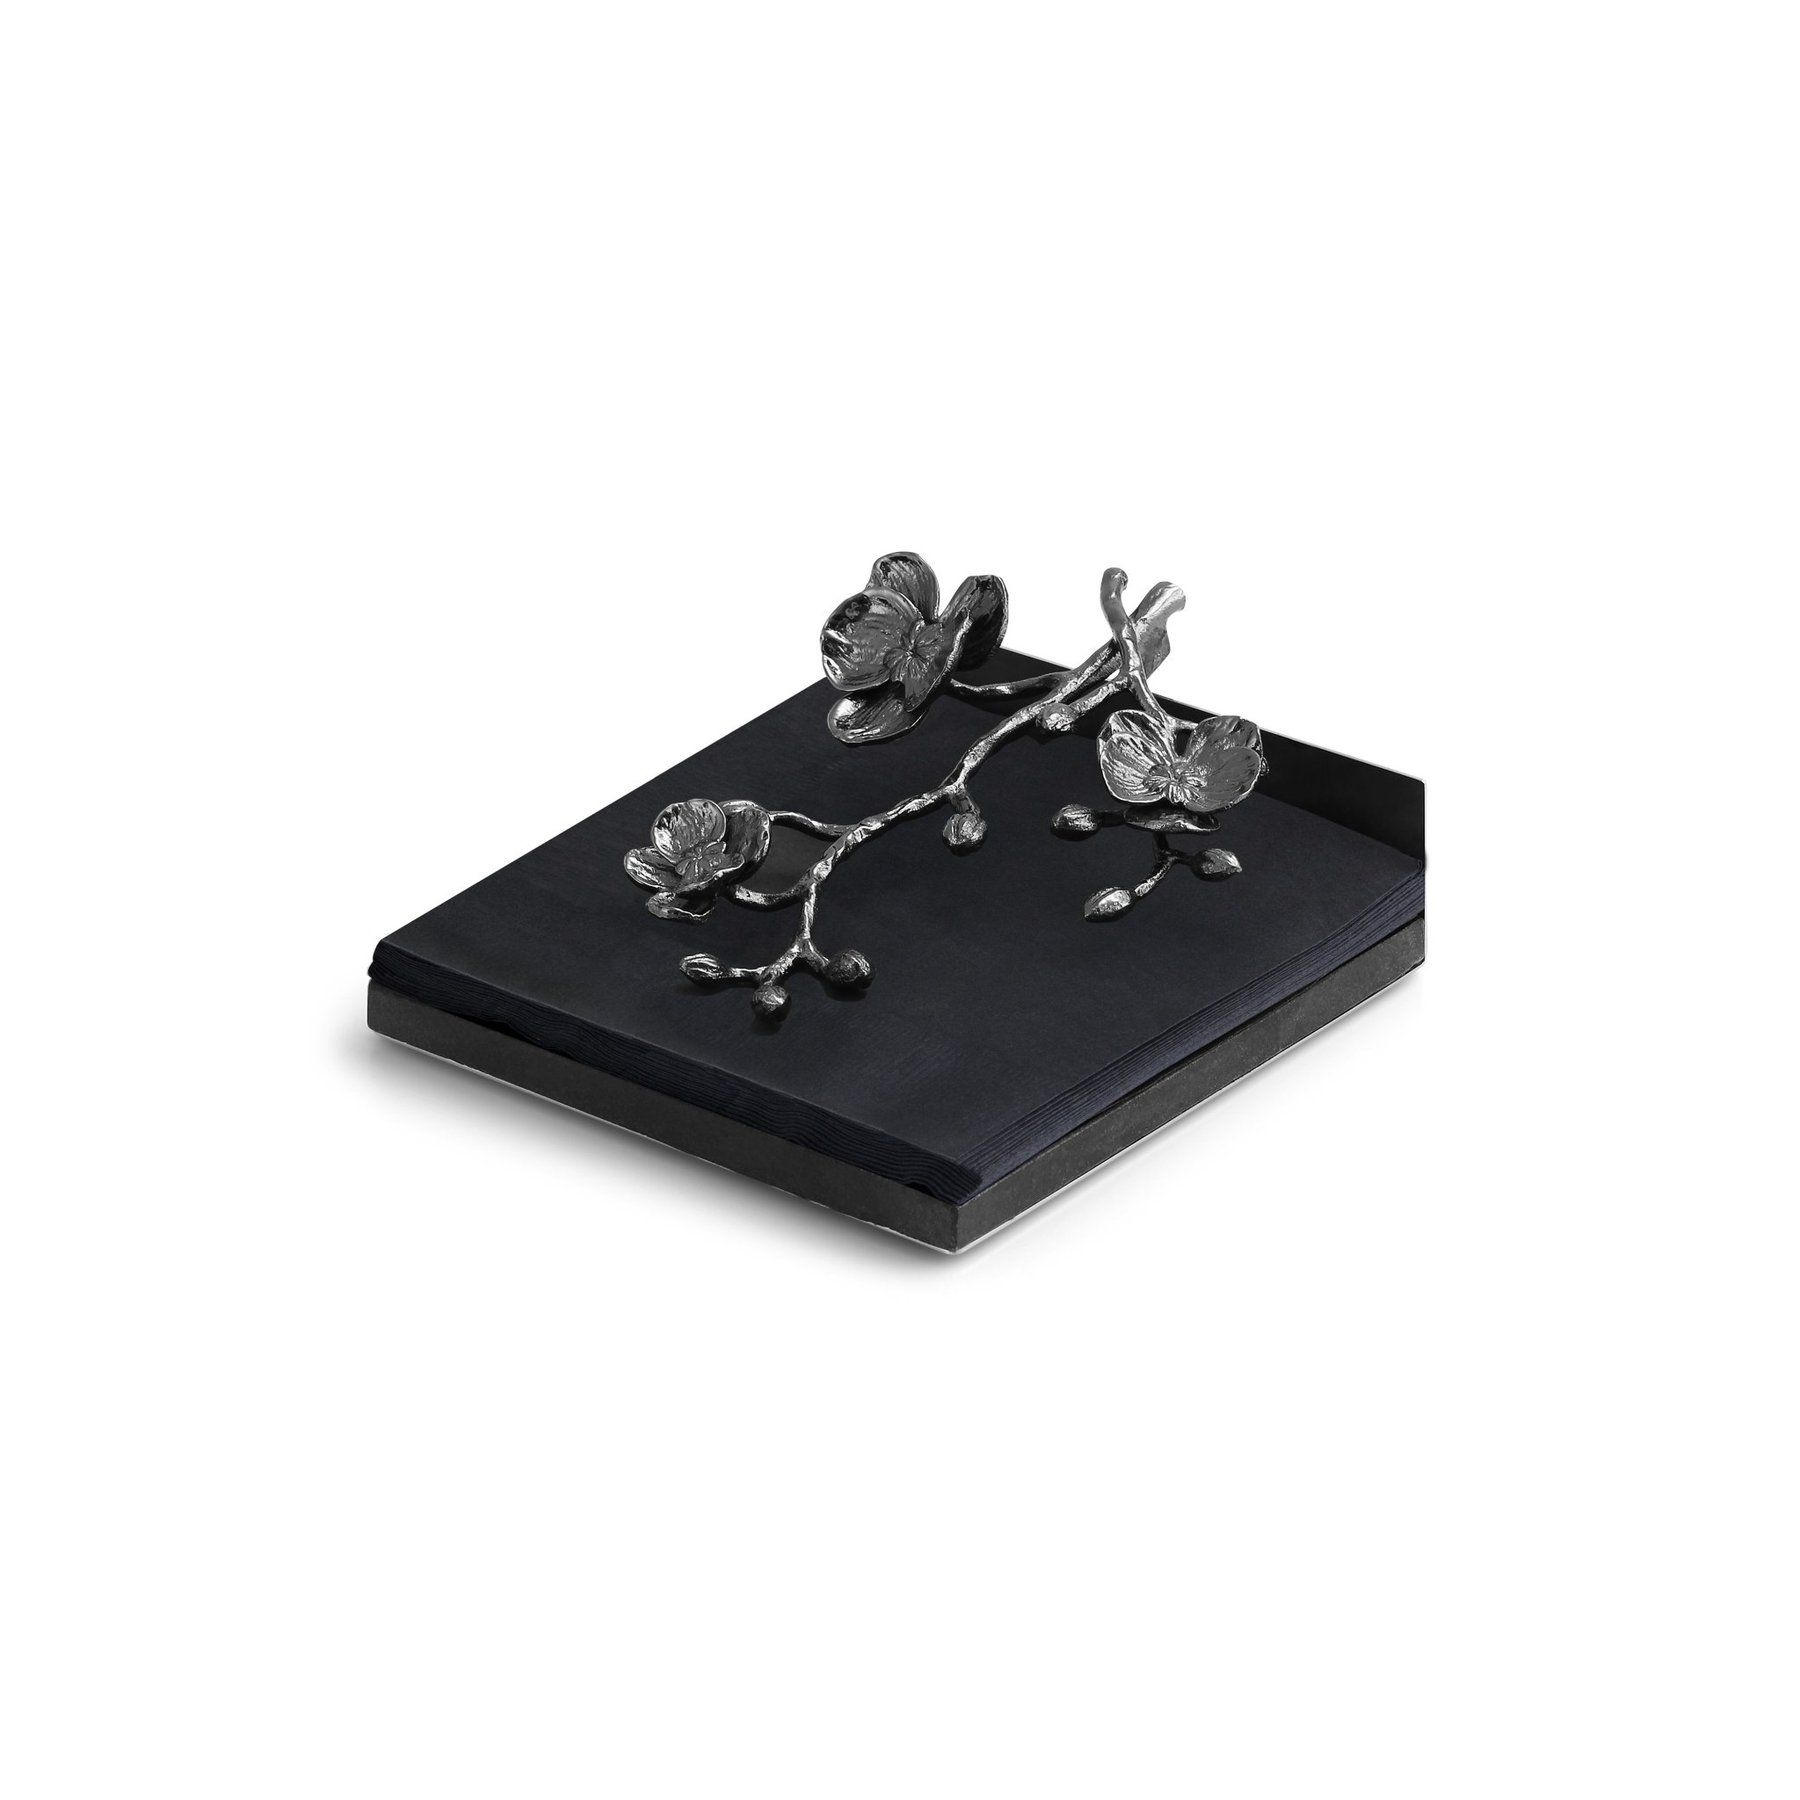 Black Orchid Dinner Napkin Holder In 2020 Black Orchid Michael Aram Black Orchid Napkin Holder